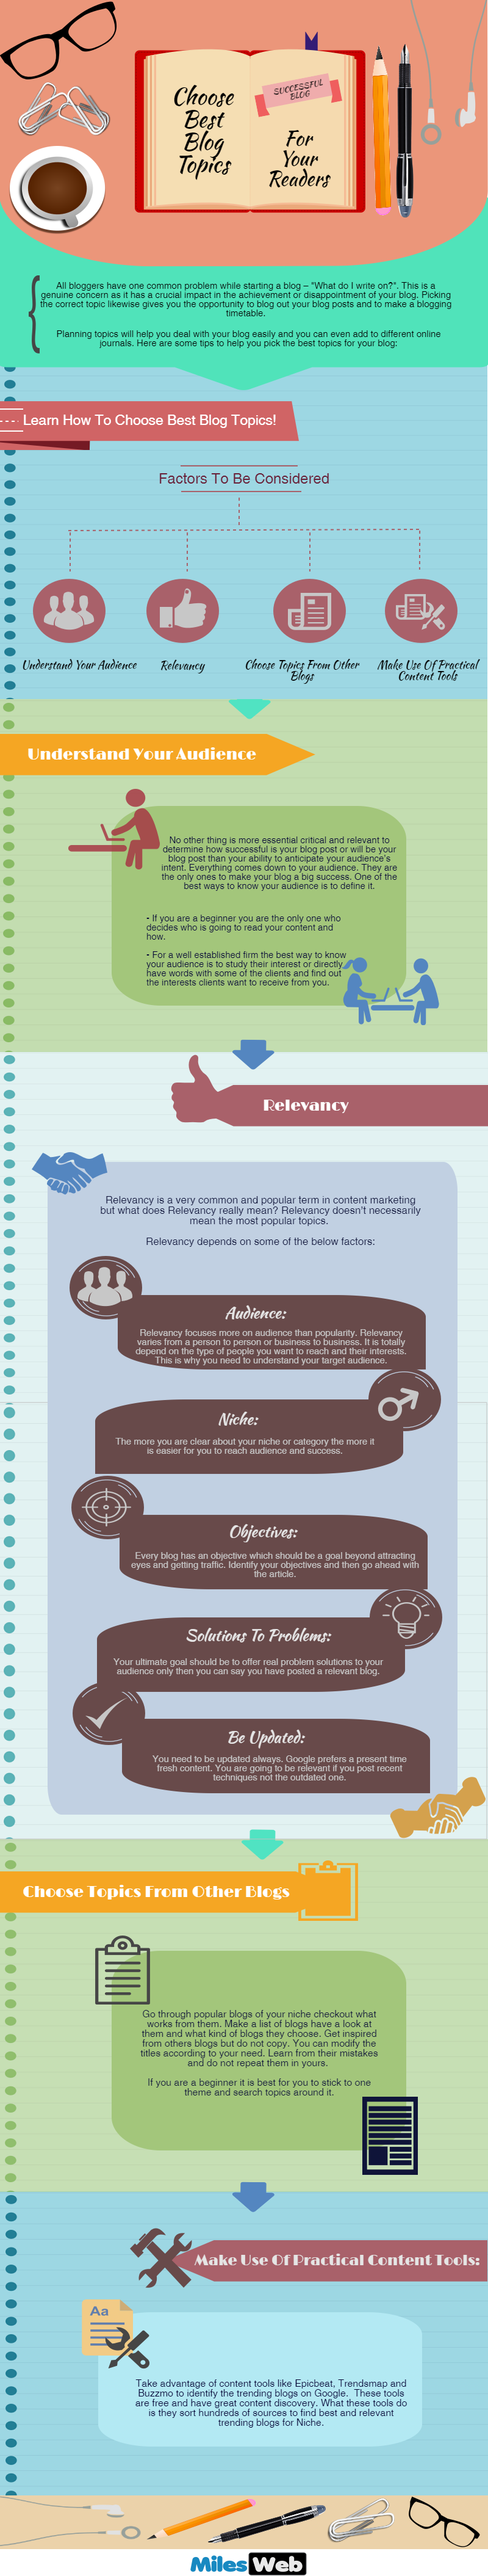 Choose-Best-Blog-Topics-infographic-plaza